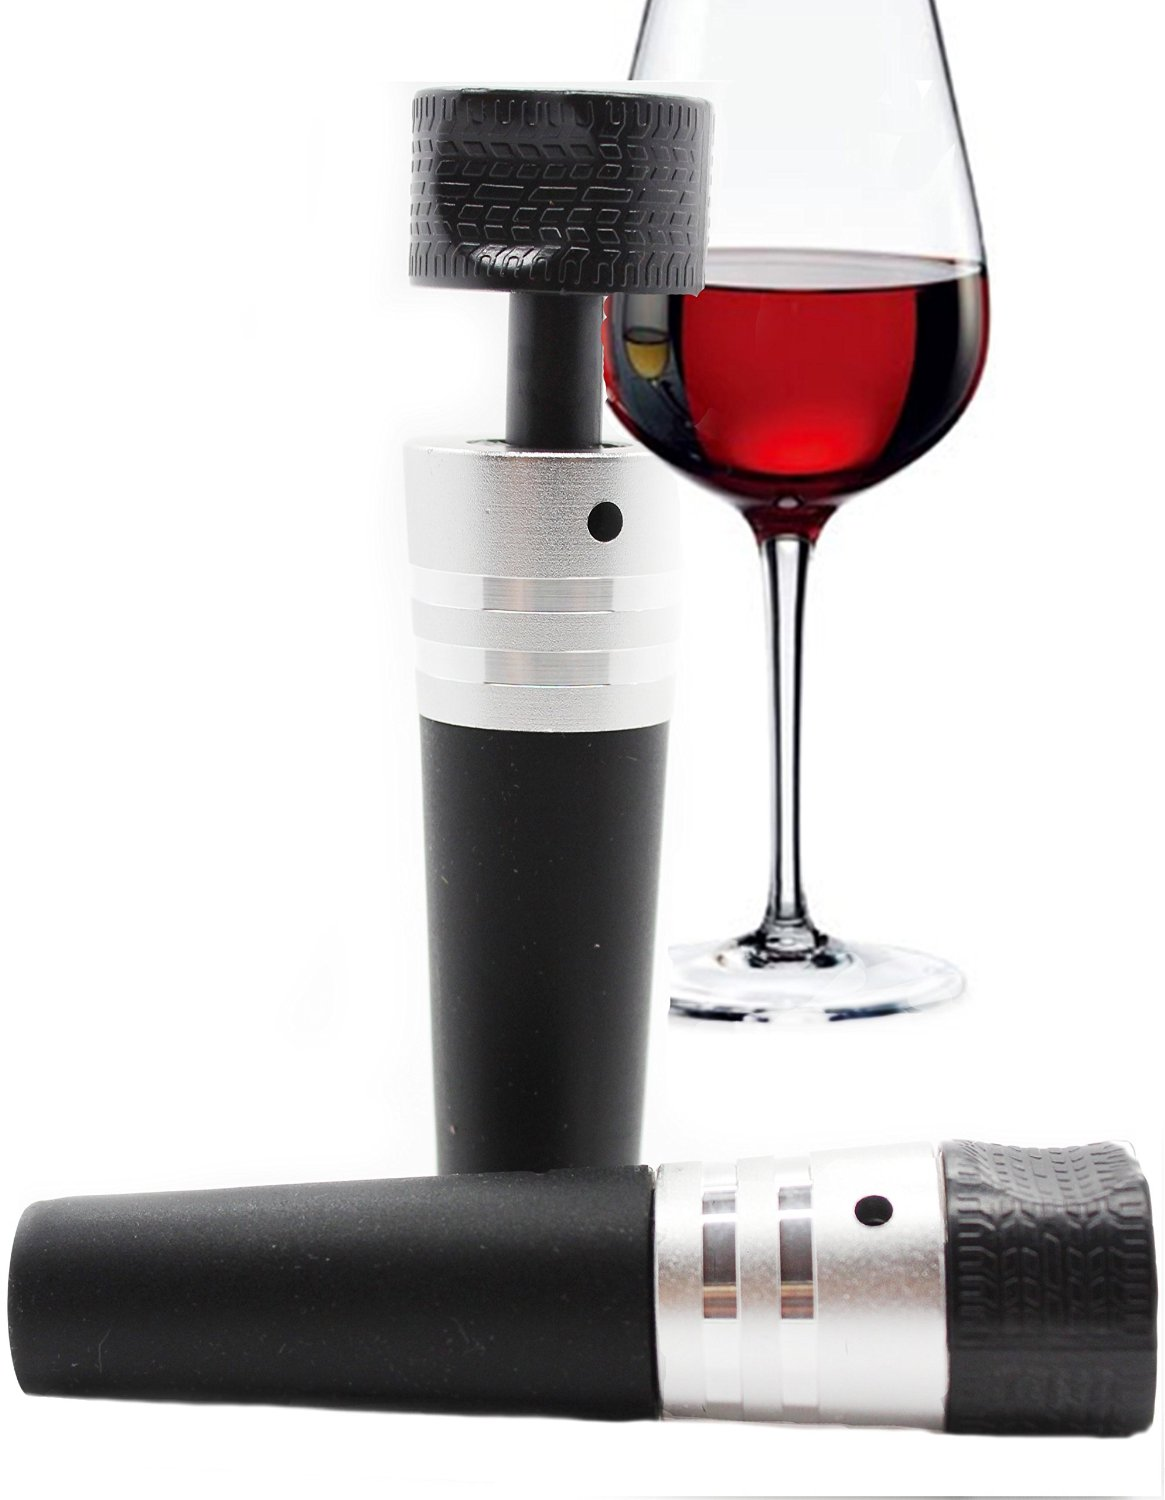 Top 7 Wine Saver Pumps and Stoppers